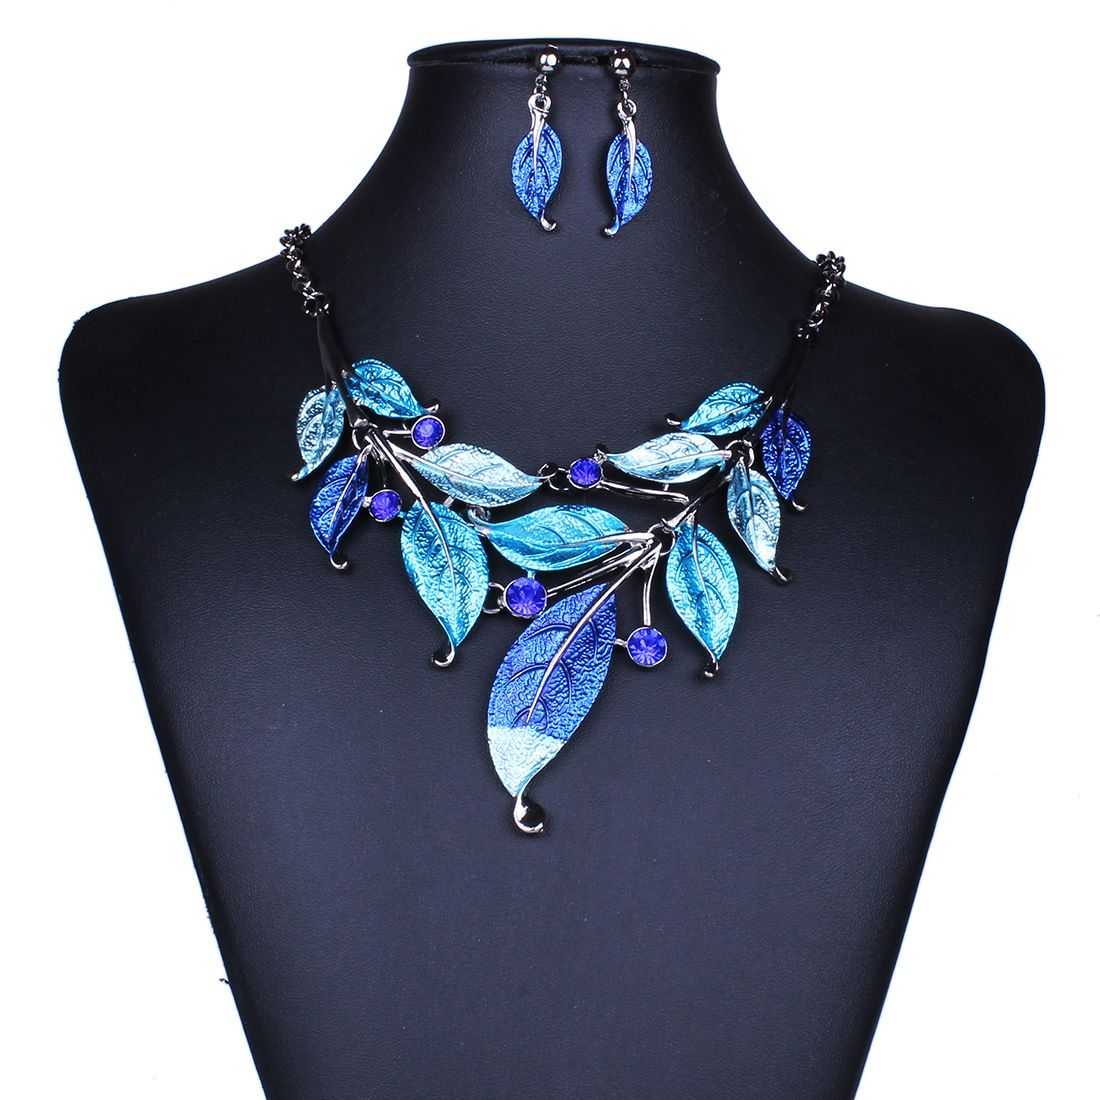 Retro Classic Style Leaves Necklace ( Including Earrings